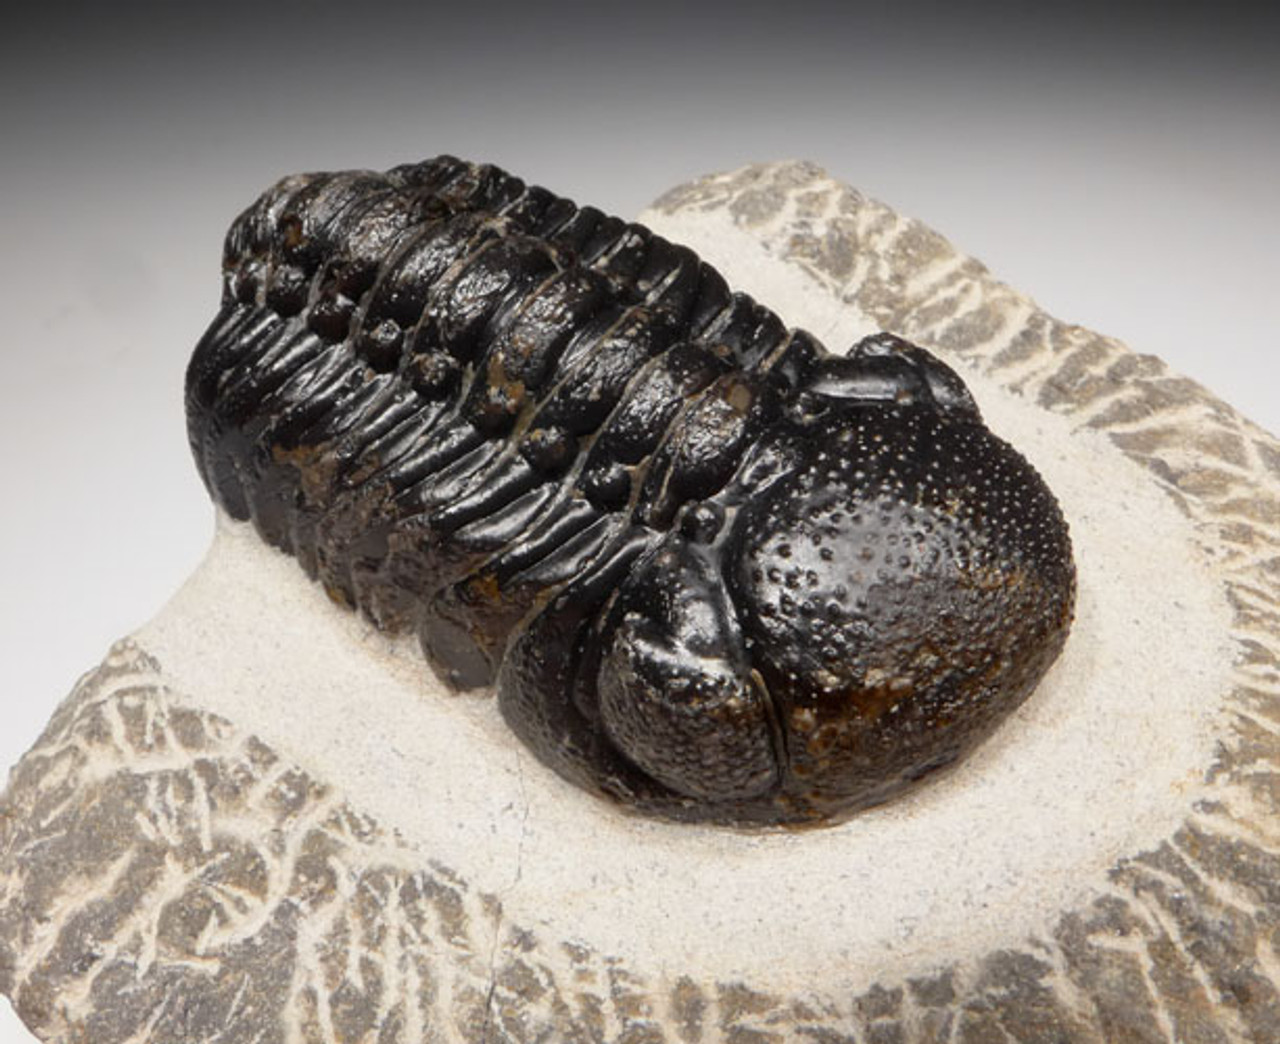 TRX384 - QUALITY PHACOPS TRILOBITE FOSSIL FROM THE DEVONIAN PERIOD